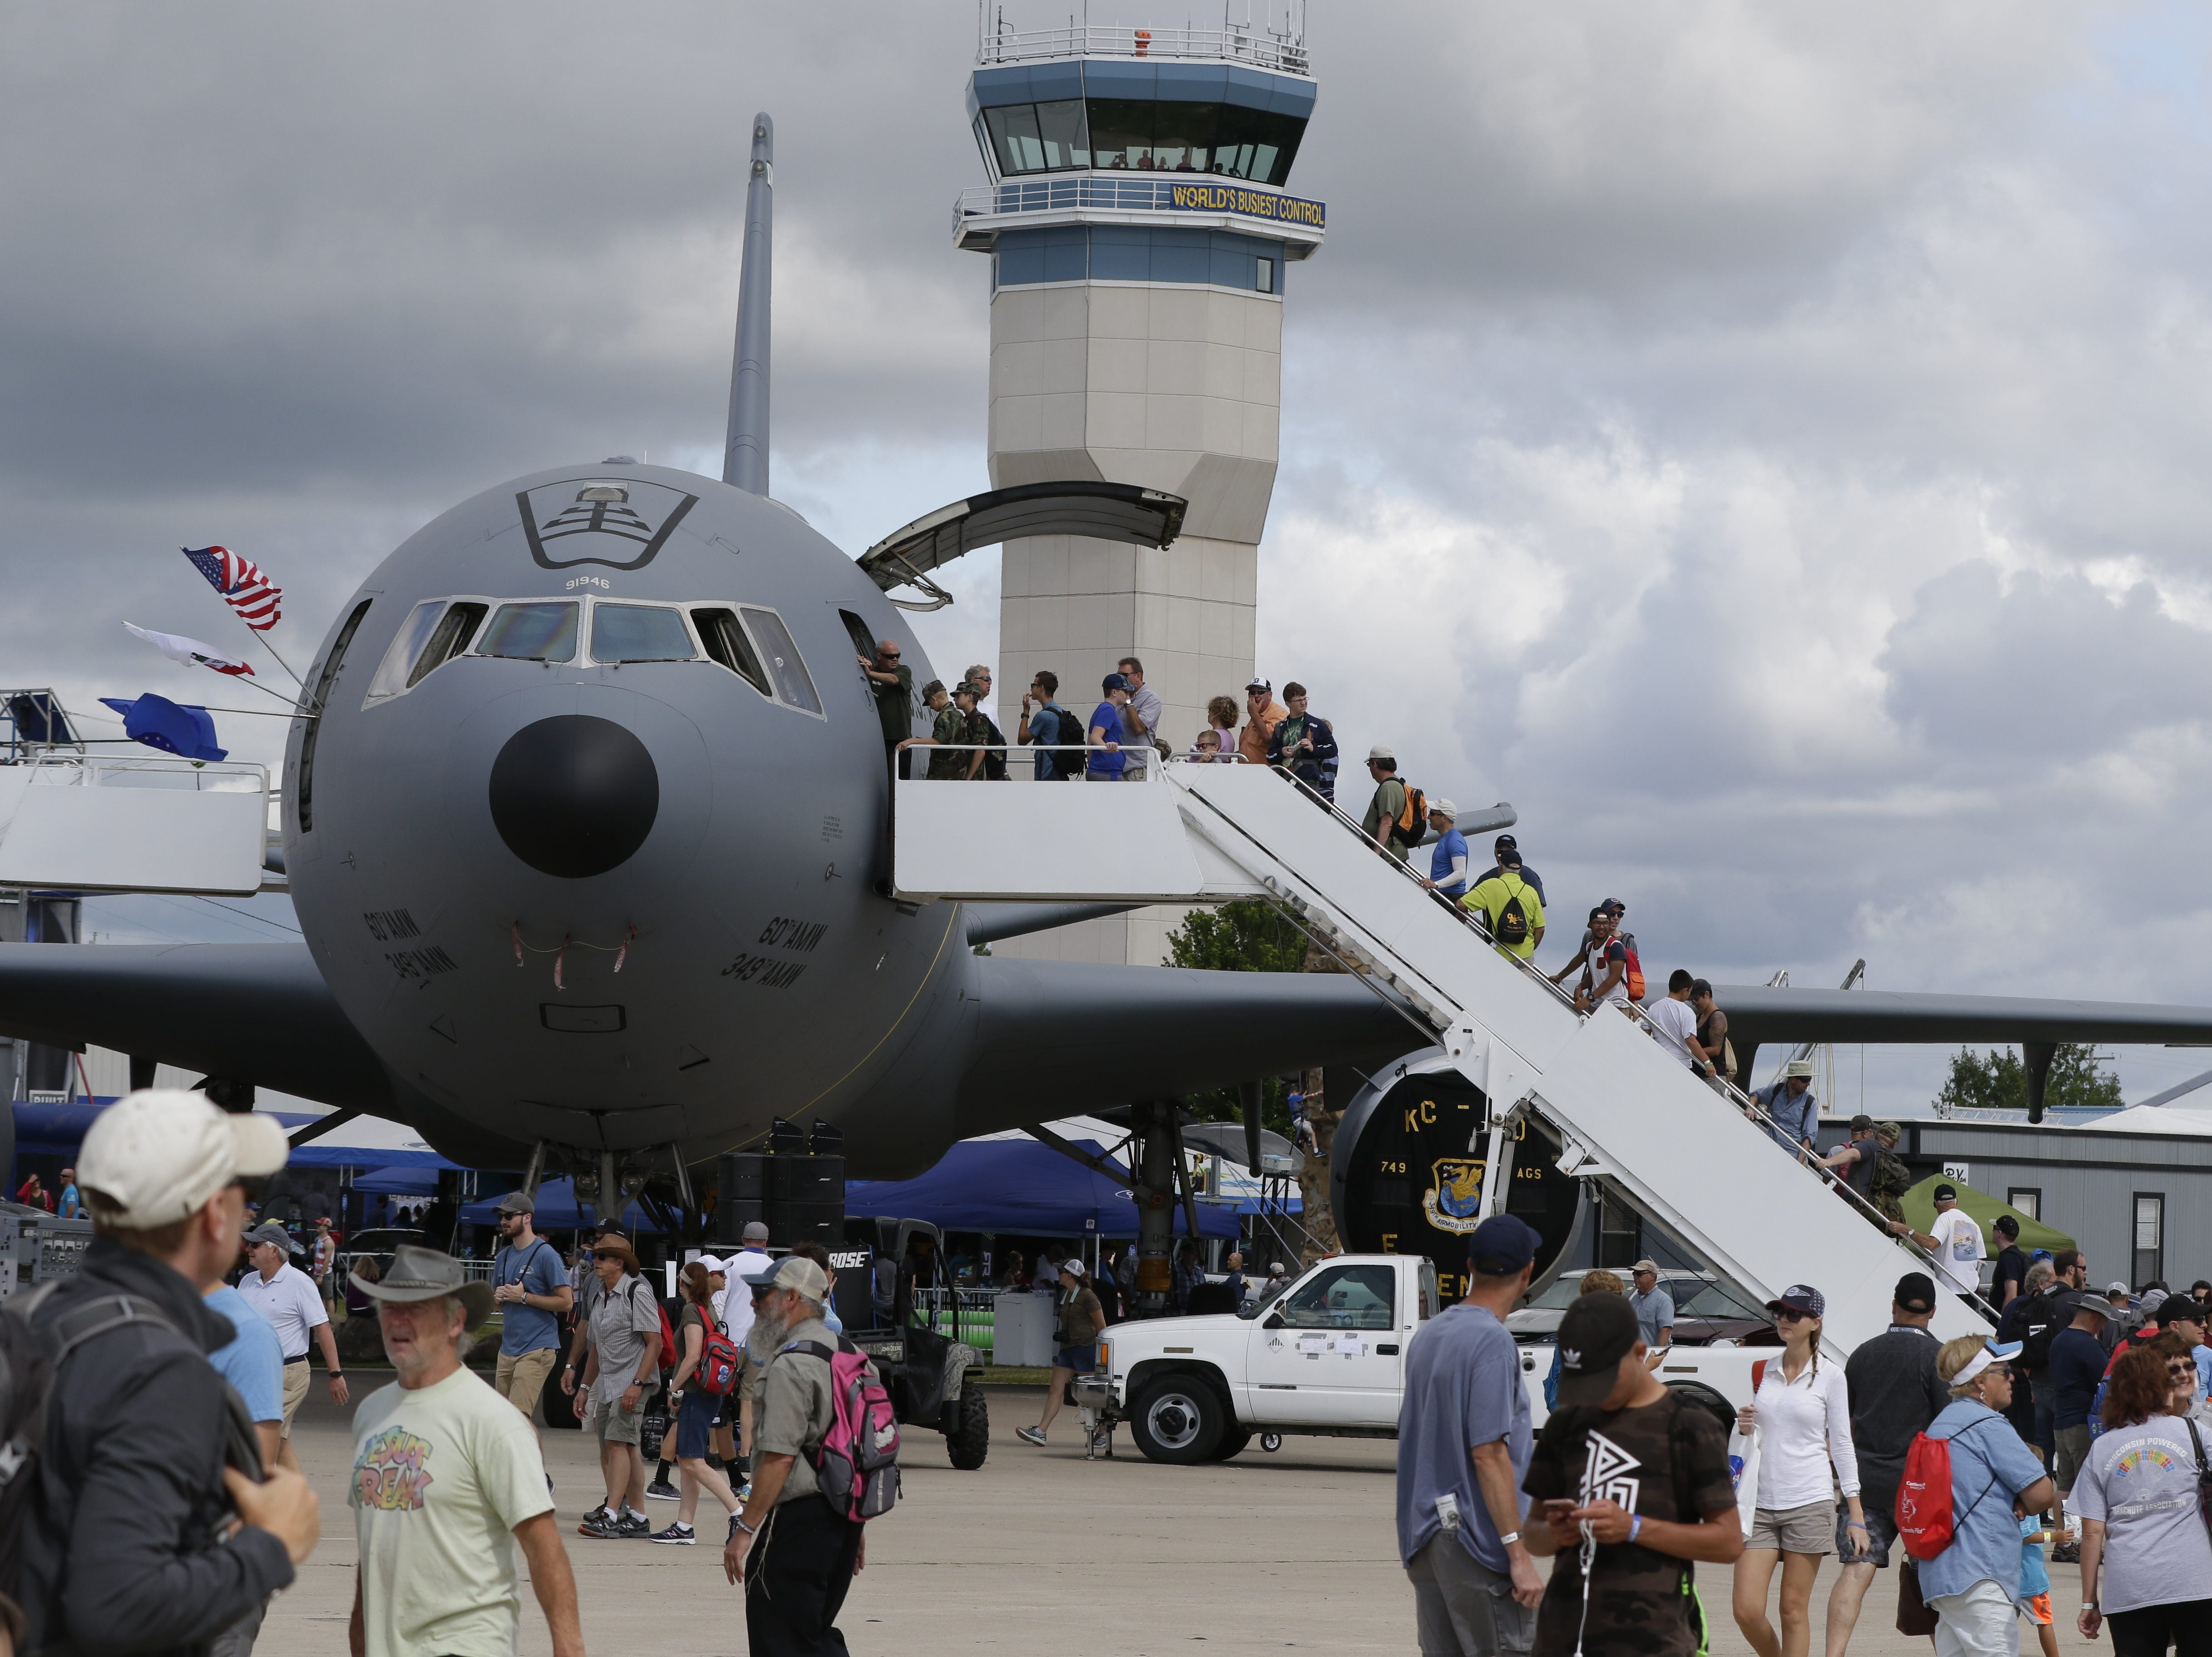 The KC-10 was a popular attraction on Boeing Plaza, Thursday, July 26, 2018, in Oshkosh, Wis.  The 66th annual Experimental Aircraft Association Fly-In Convention, AirVenture 2018 draws over 500,000 people and over 10,000 planes from more than 70 nations annually to the area.  The convention runs through July 29.Joe Sienkiewicz/USA Today NETWORK-Wisconsin